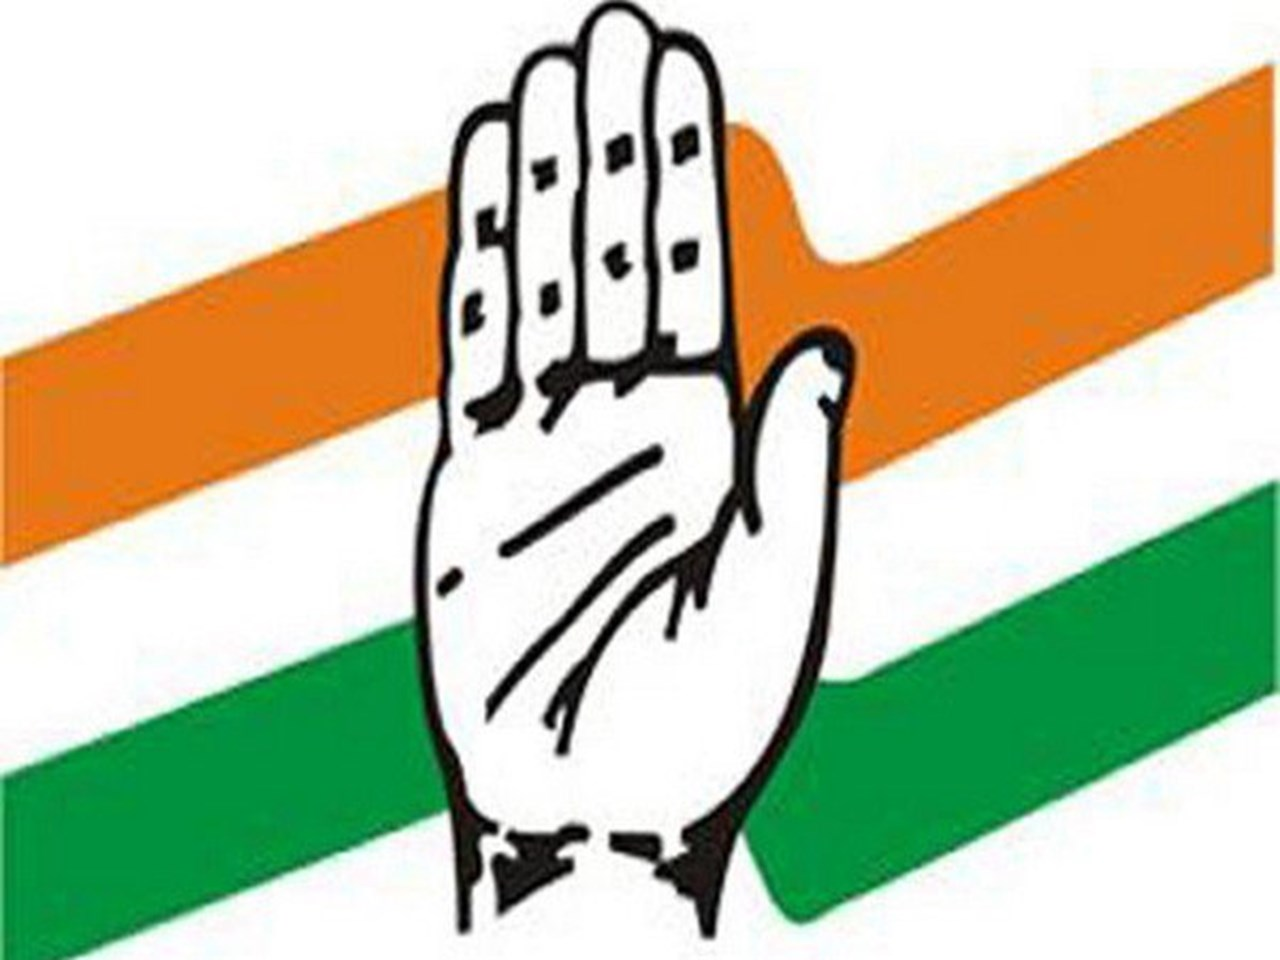 Would enforce anti-corruption laws without discrimination if voted to power: Congress